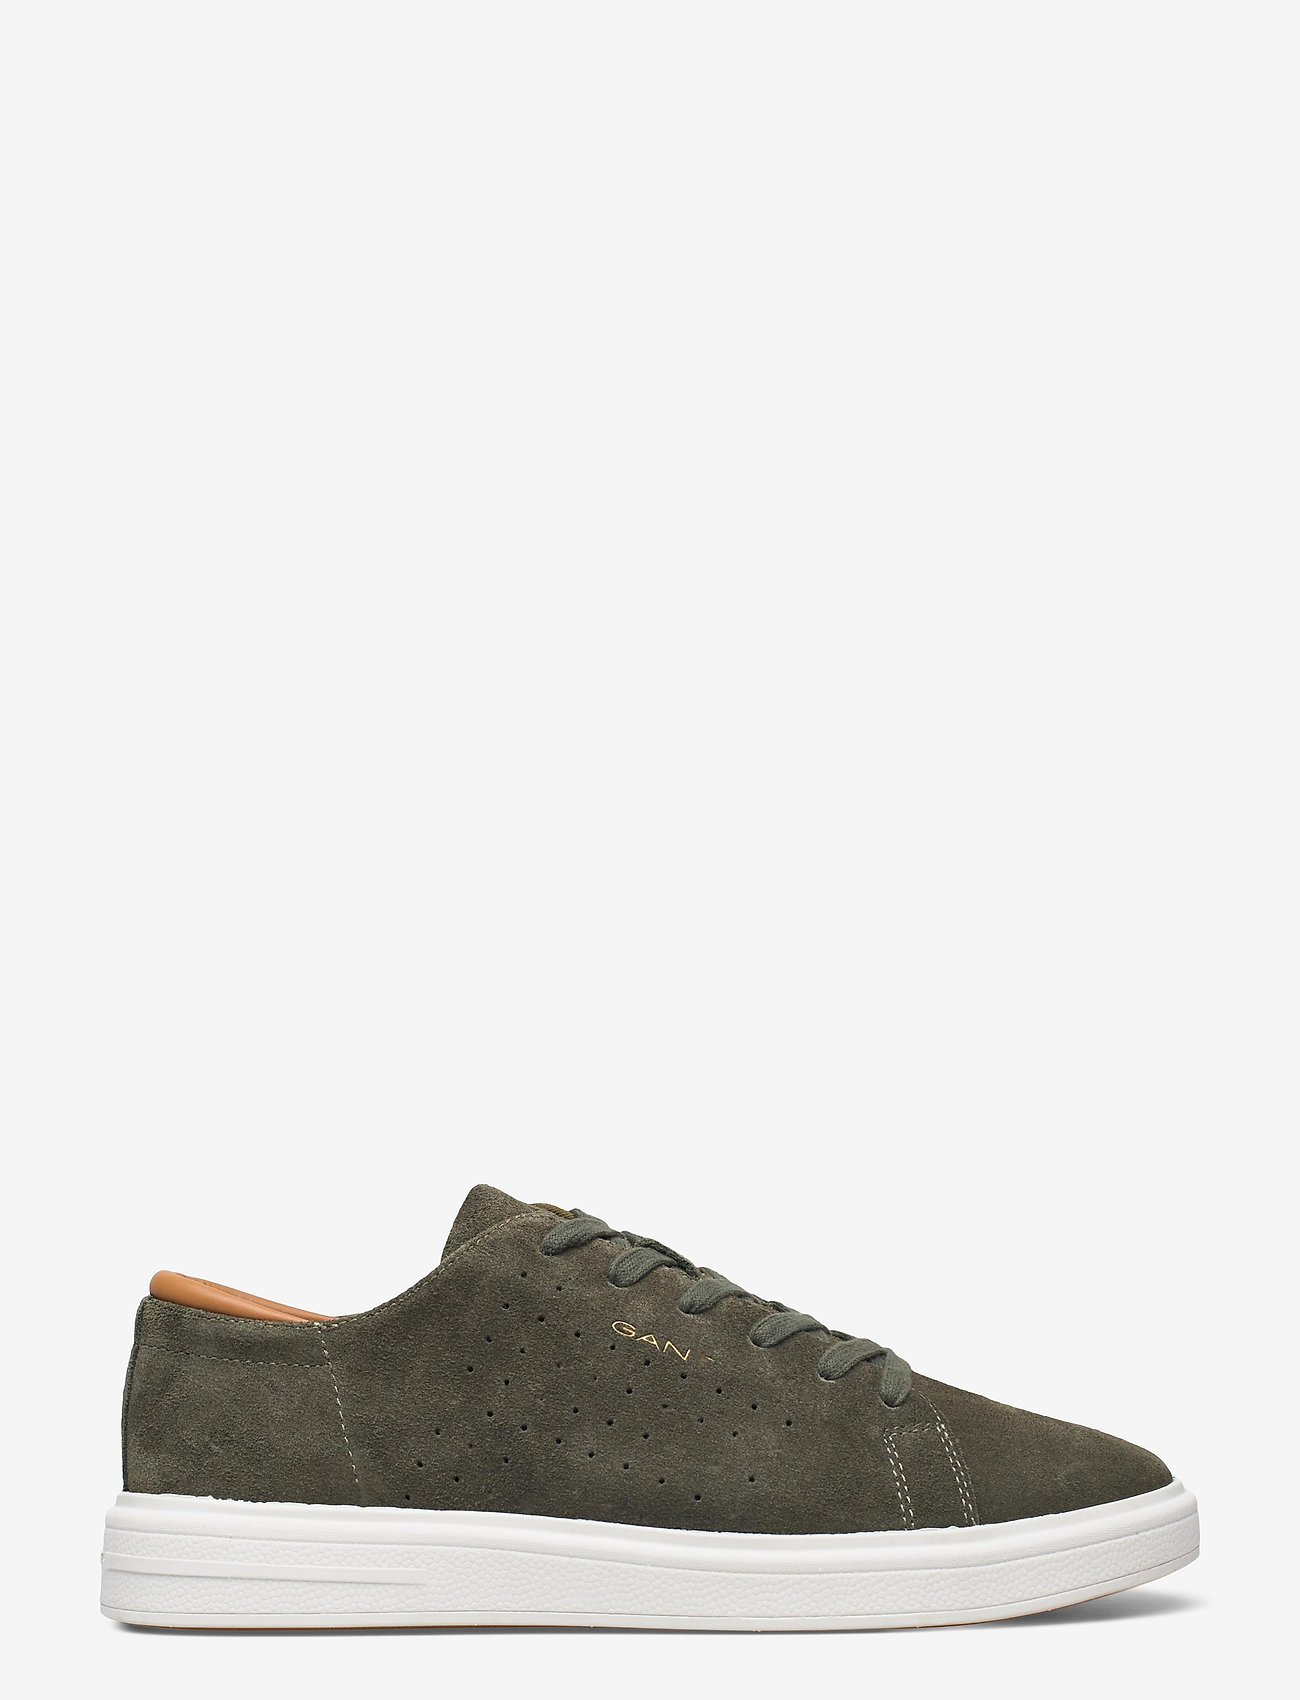 GANT - Fairville Low lace s - low tops - leaf green - 1